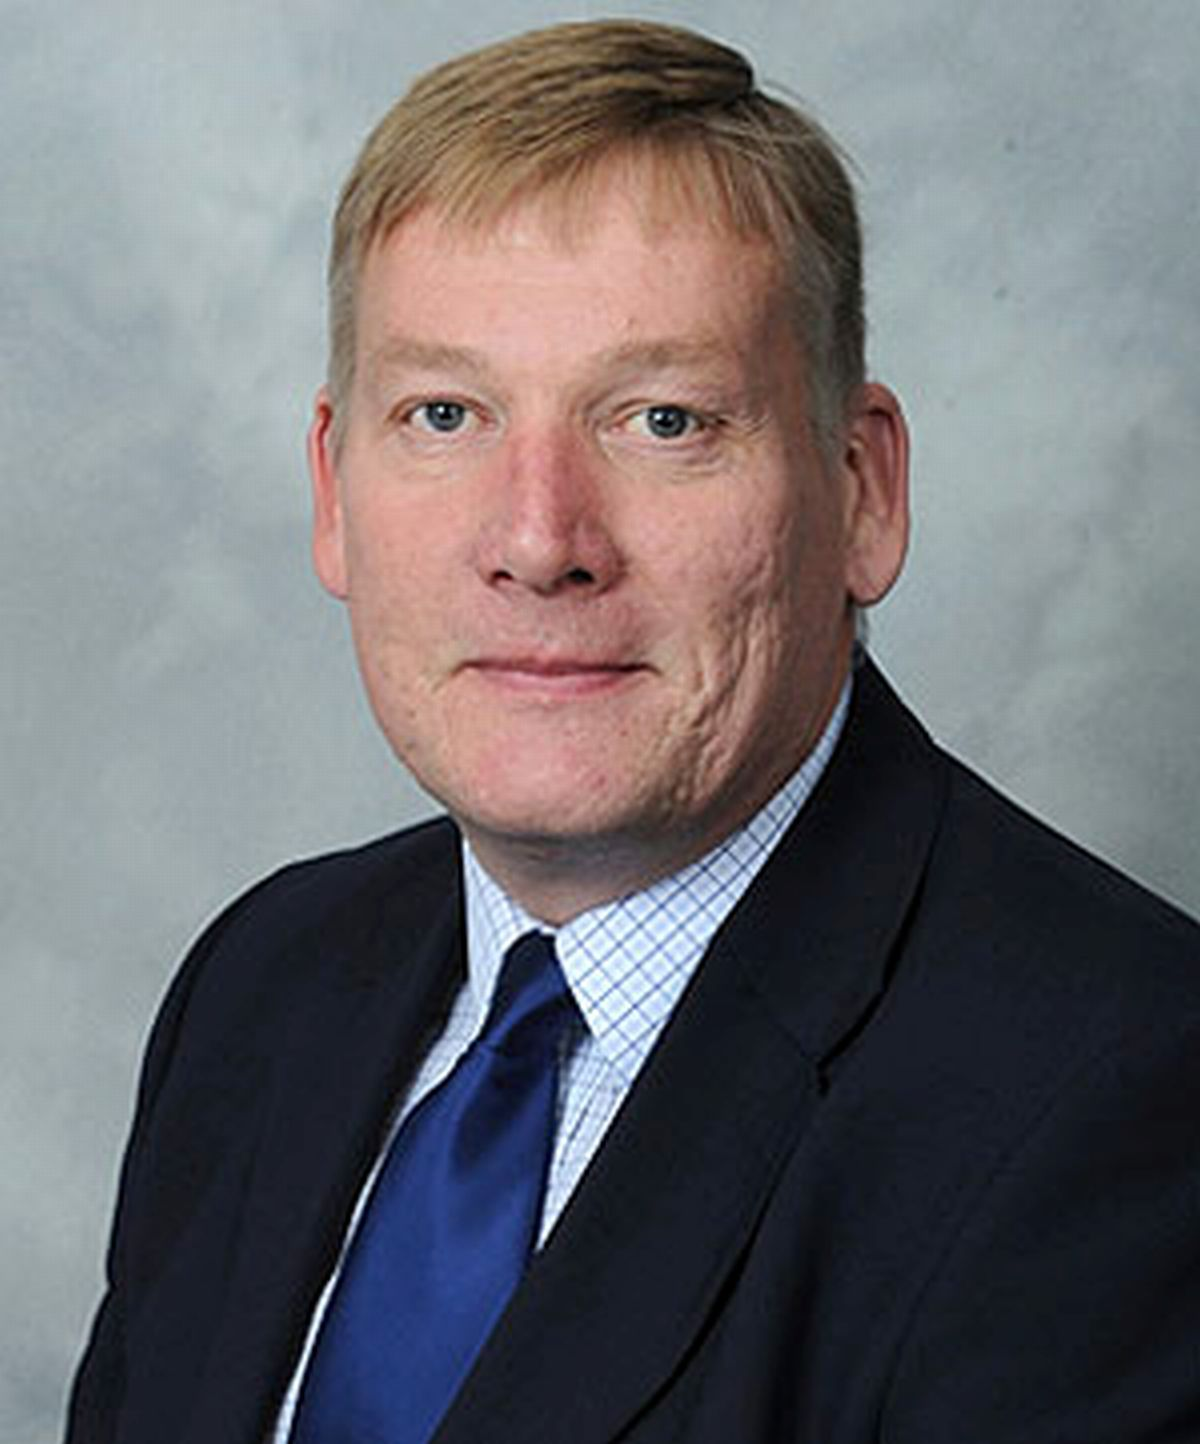 Housing Minister Kris Hopkins, MP for Keighley and Ilkley